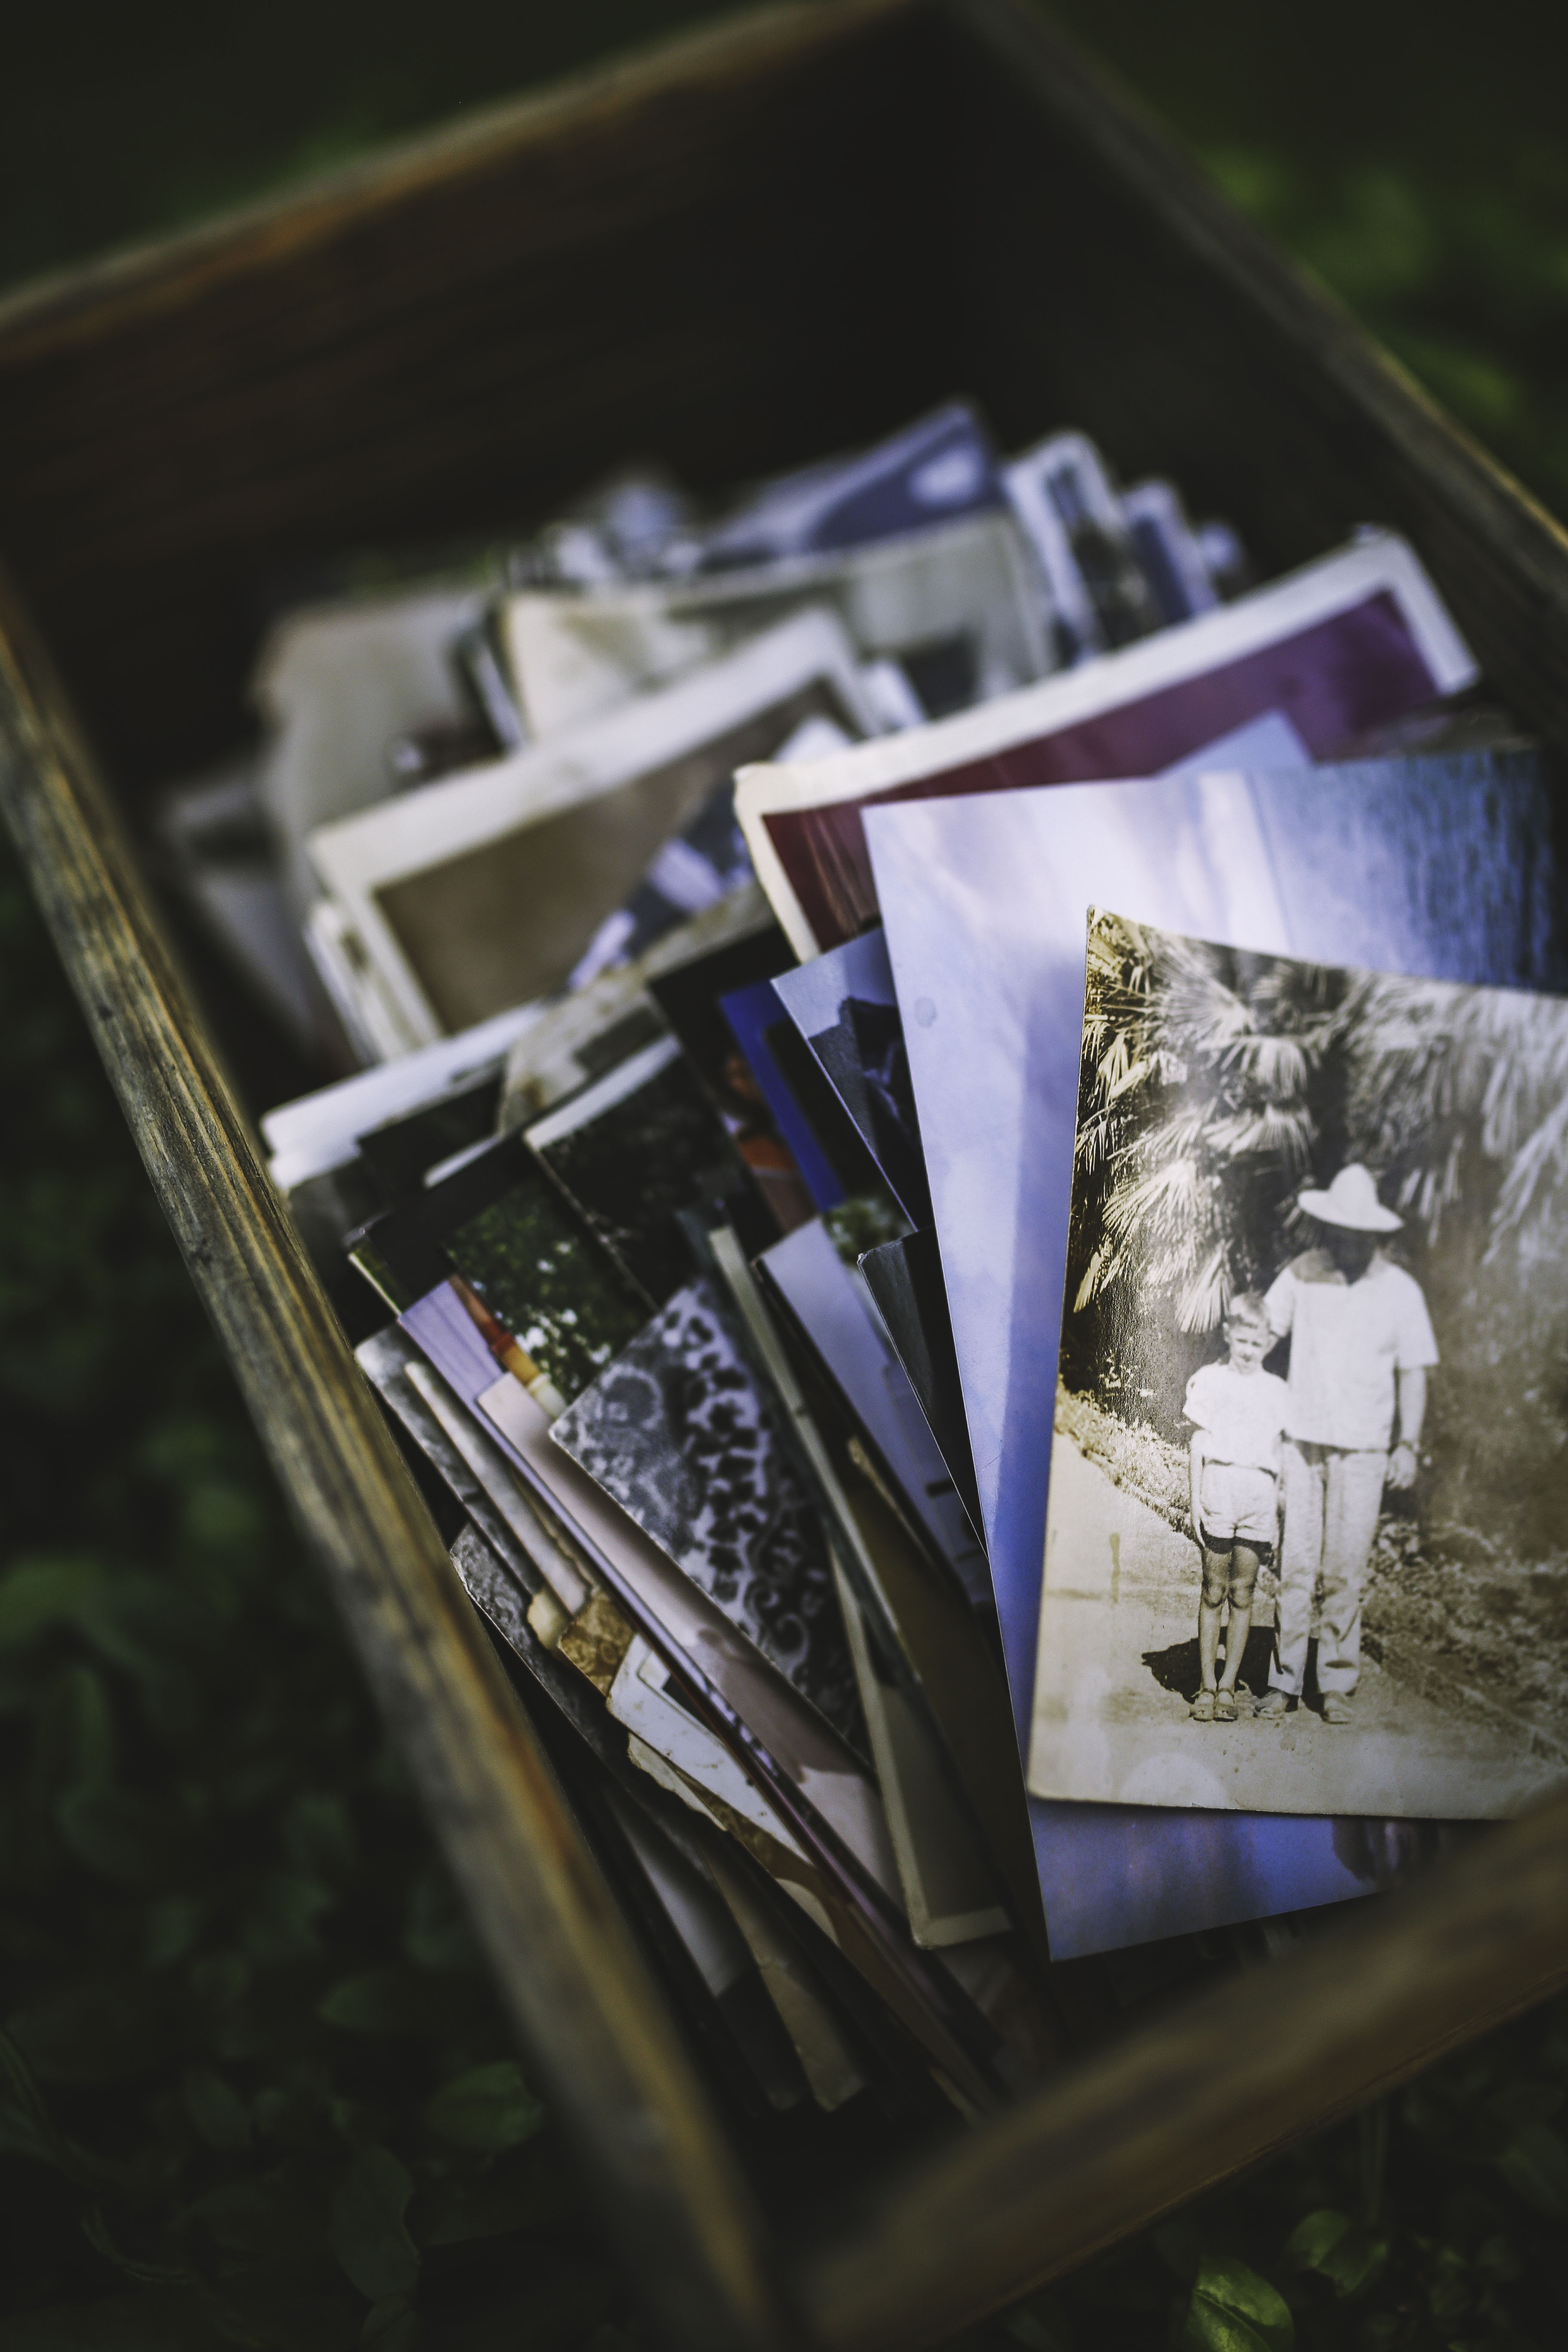 Old Photos In The Box 183 Free Stock Photo